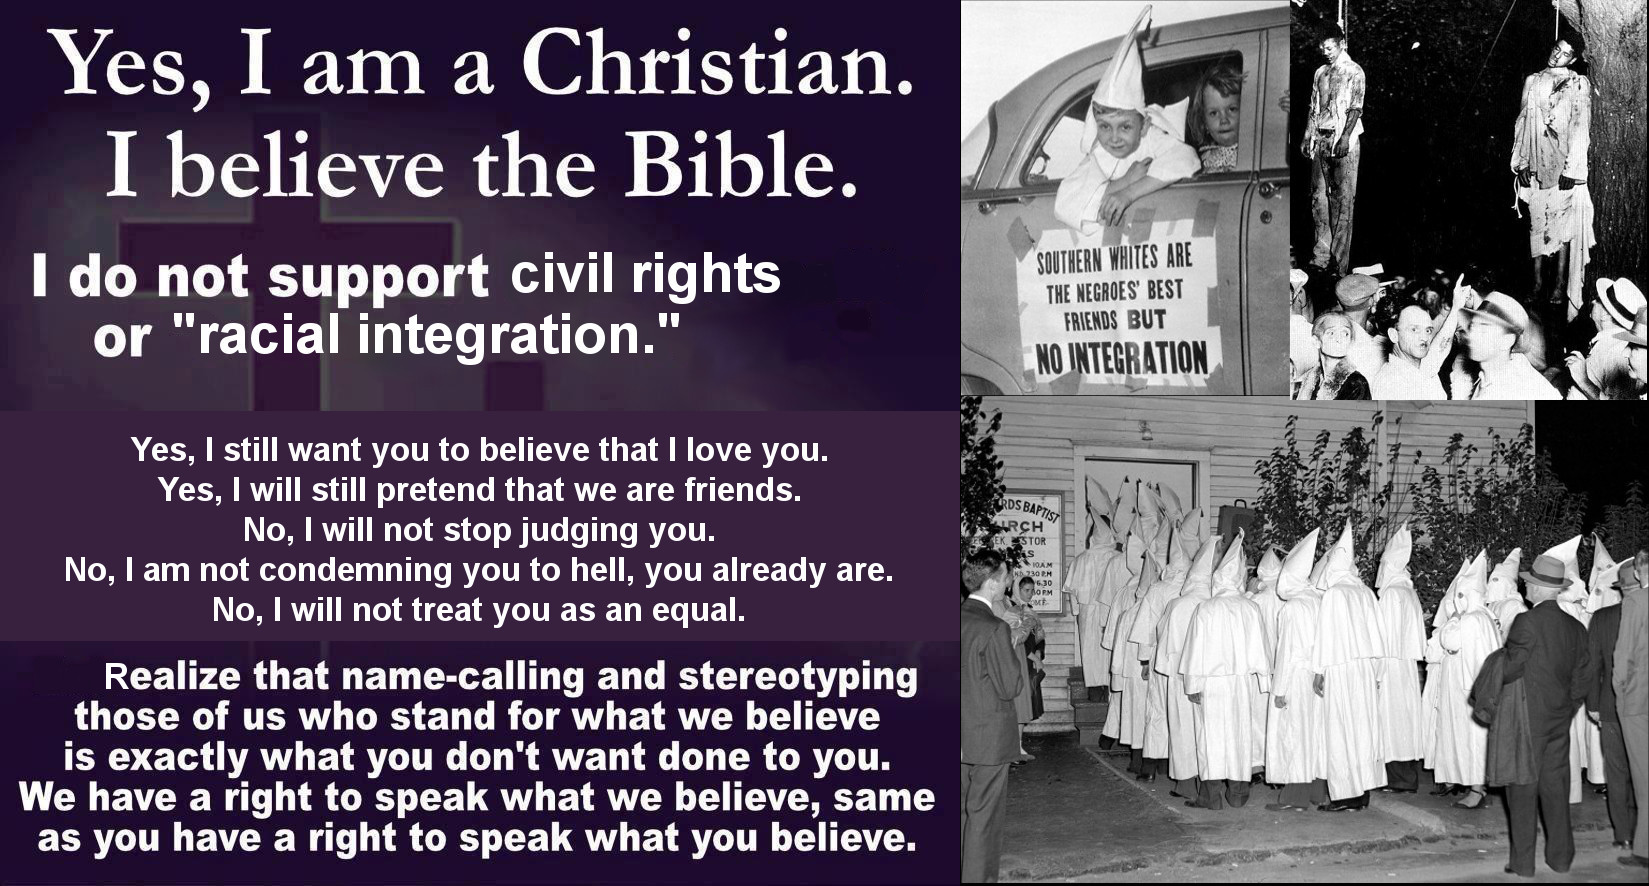 honest christian meme - i am a christian, i believe in the bible - 1964 civil rights